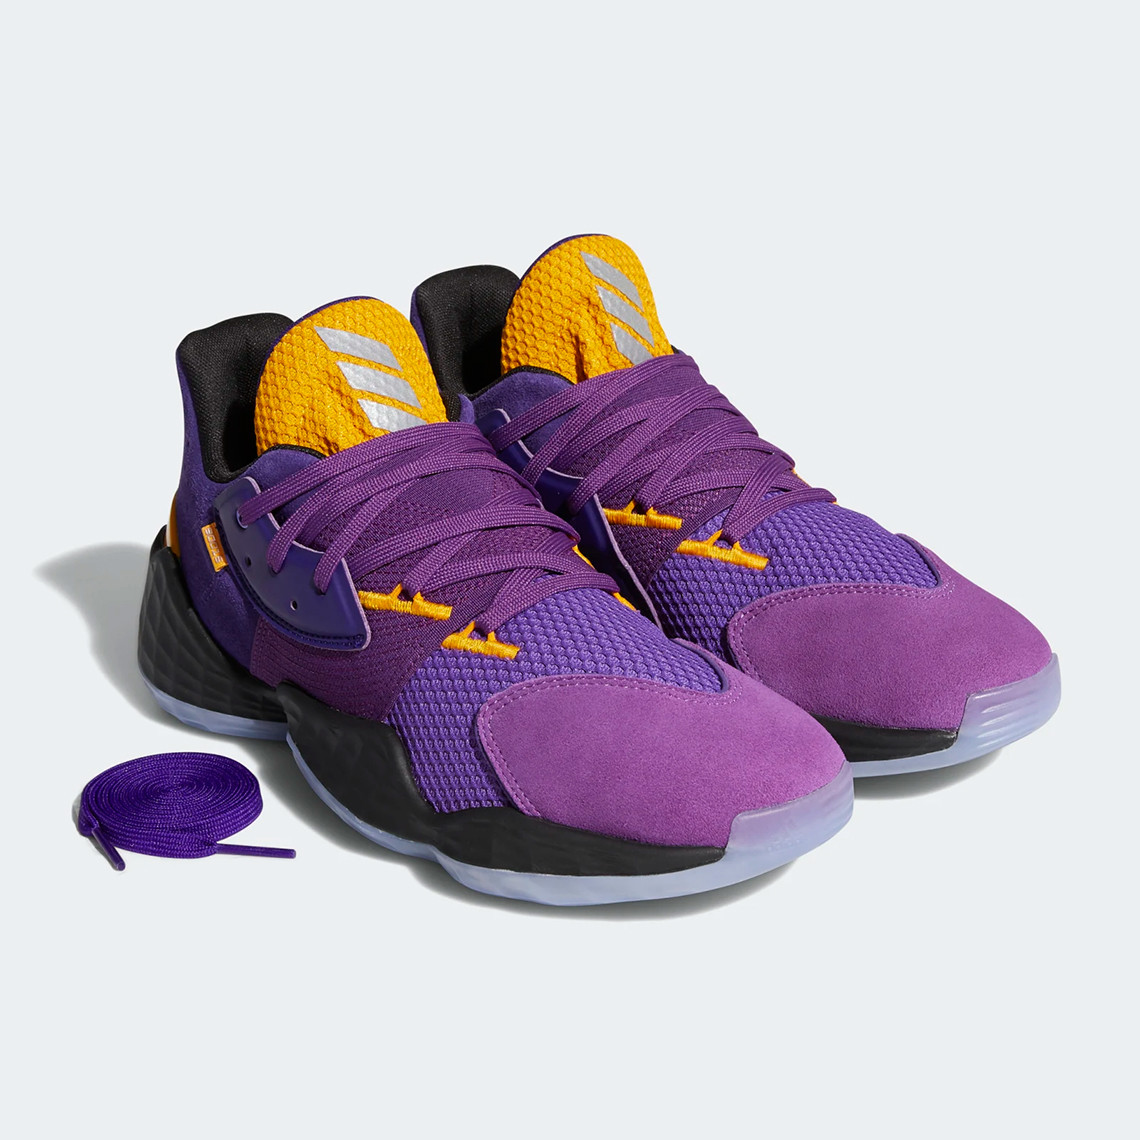 """James Harden Called Out Western Conference Rivals With The adidas Harden Vol. 4 """"Su Casa"""" Pack致敬西部联盟对手!adidas 推出 Harden Vol. 4 """"Su Casa"""" Pack"""